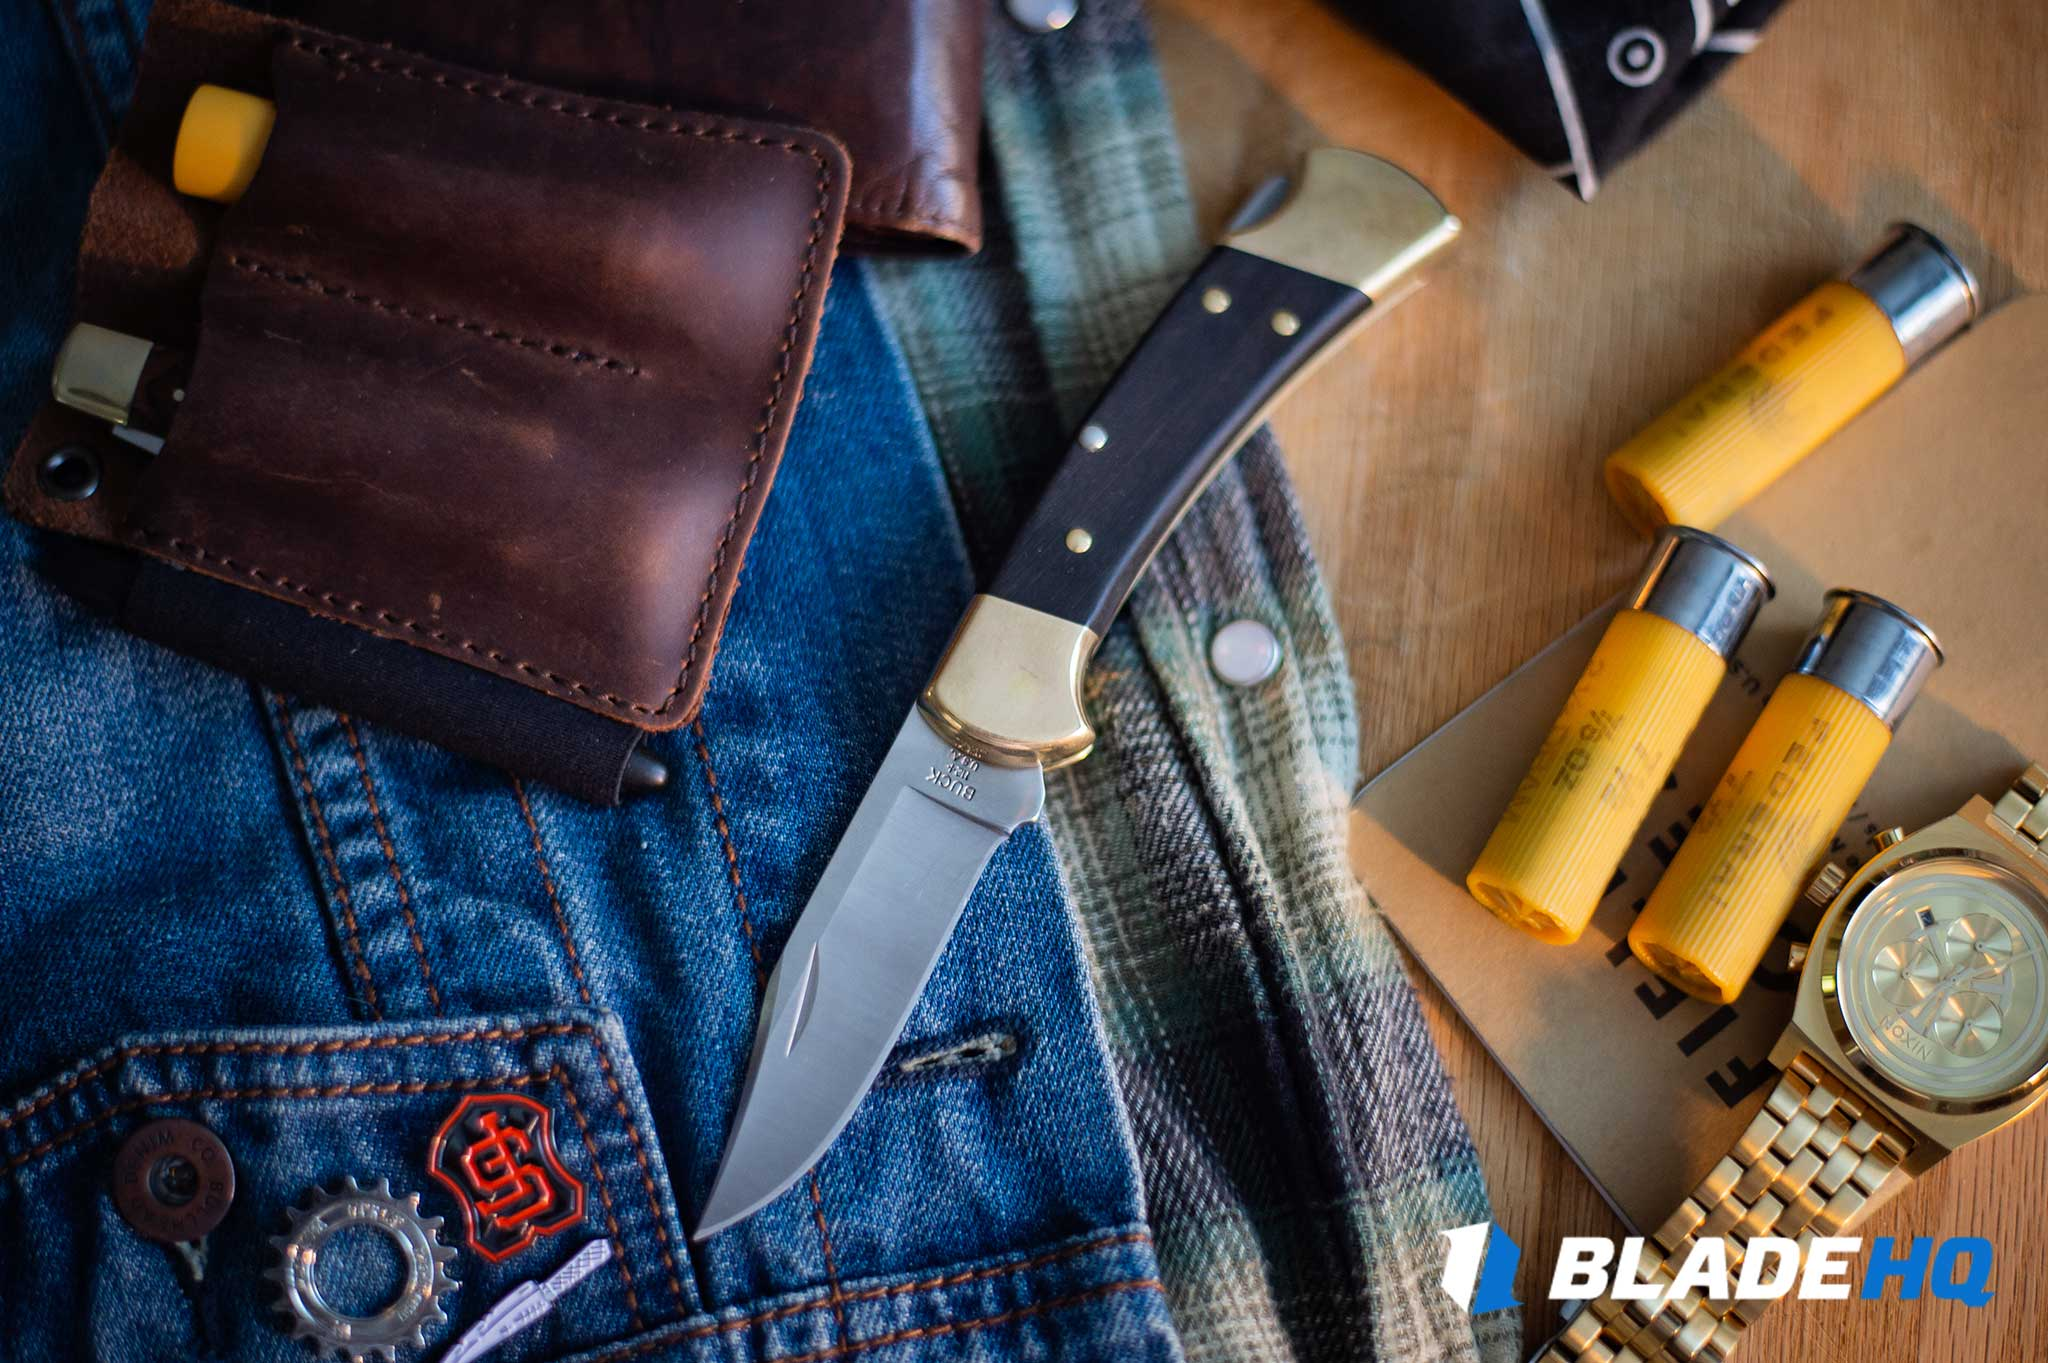 Buck 112 Knife Ease of Carry2